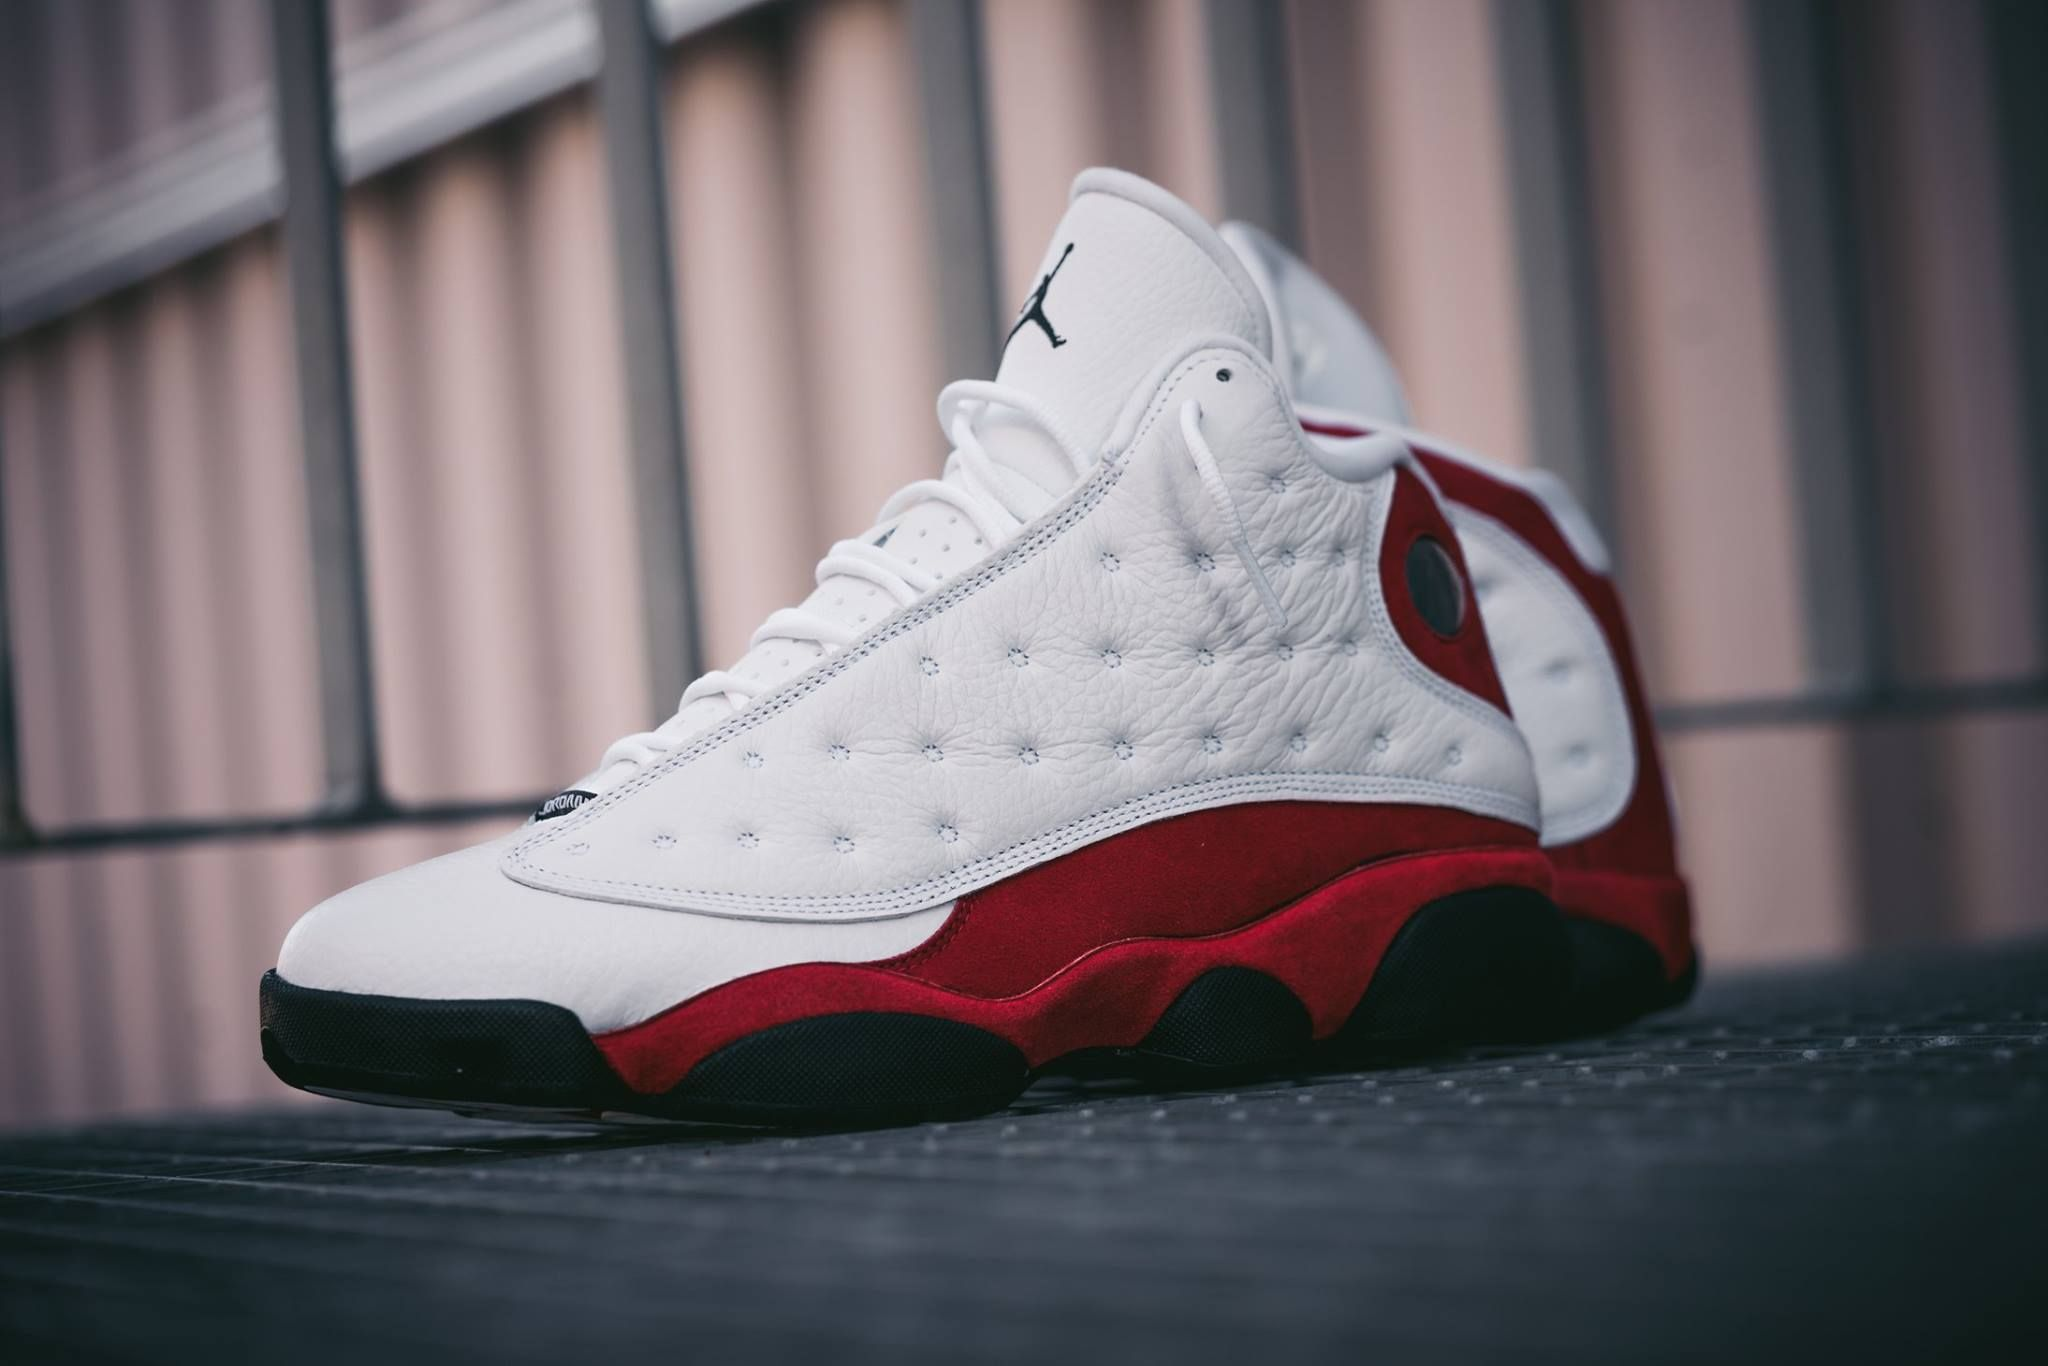 The Air Jordan 13 White True Red 2017 edition is showcased in another detailed look. Find it at select Jordan Brand stores on Feb. 18th.